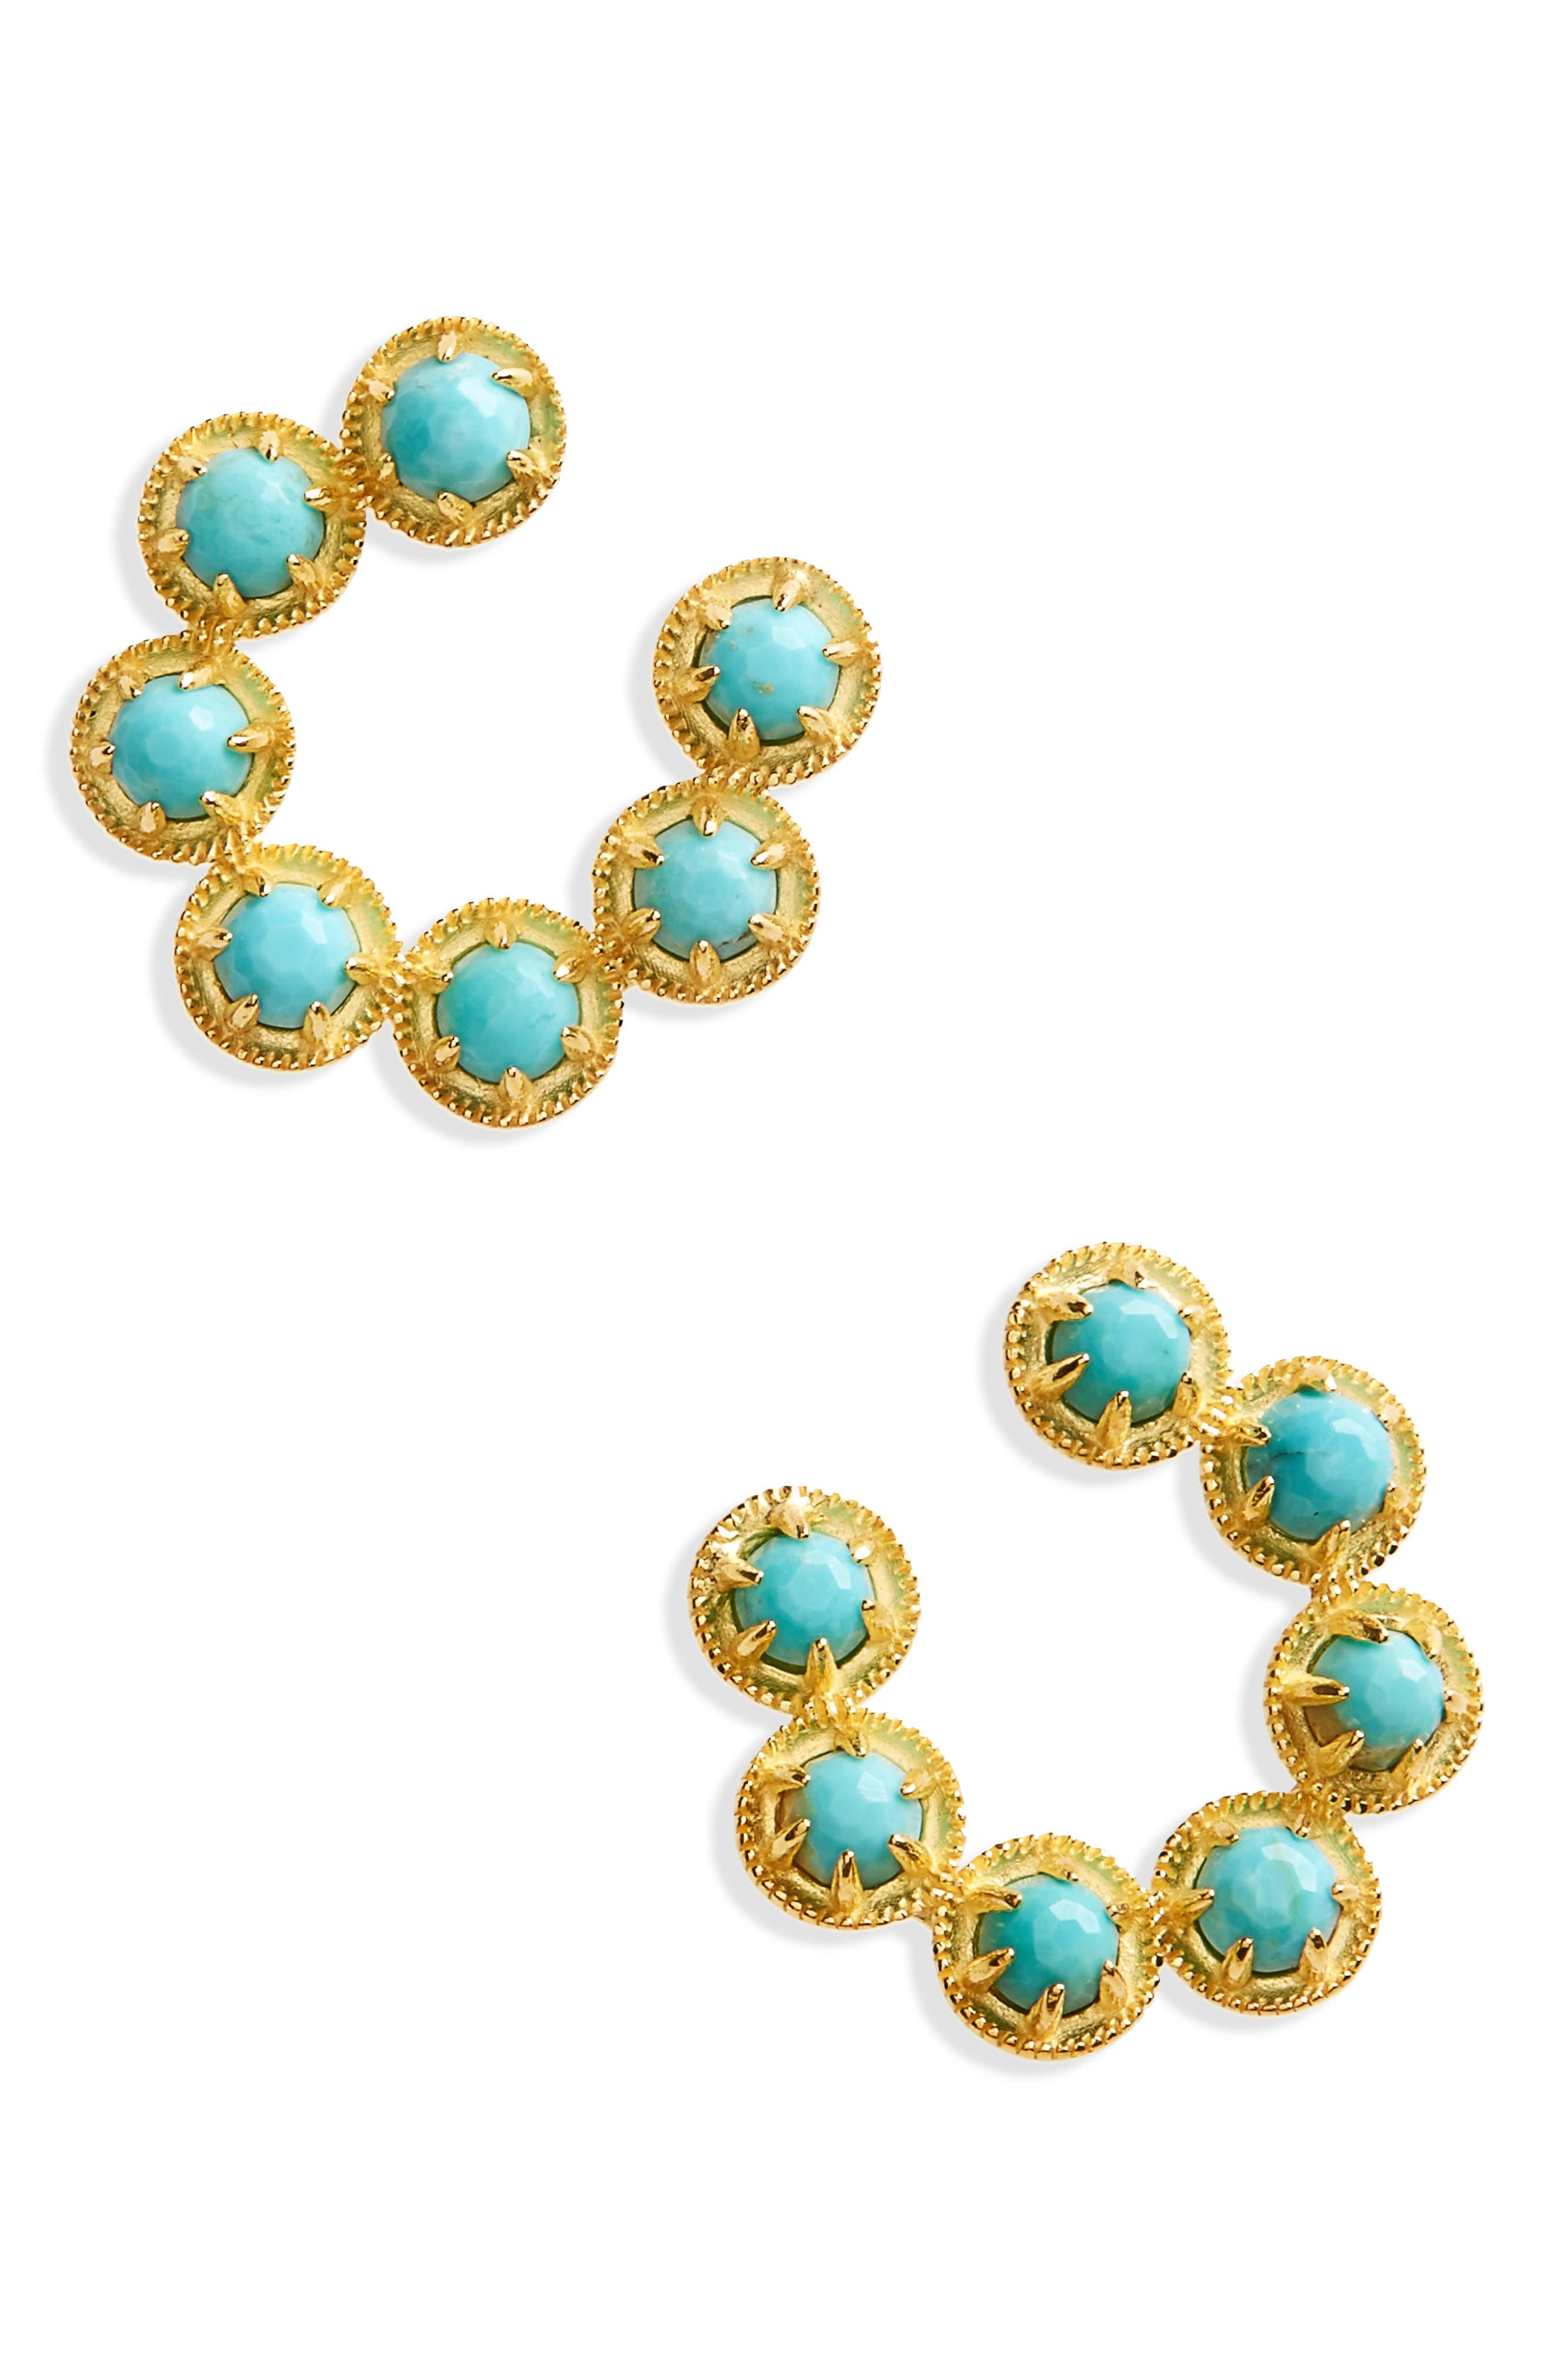 Cleo Vermeil Hoop Earrings,                         Main,                         color, TURQUOISE/ GOLD